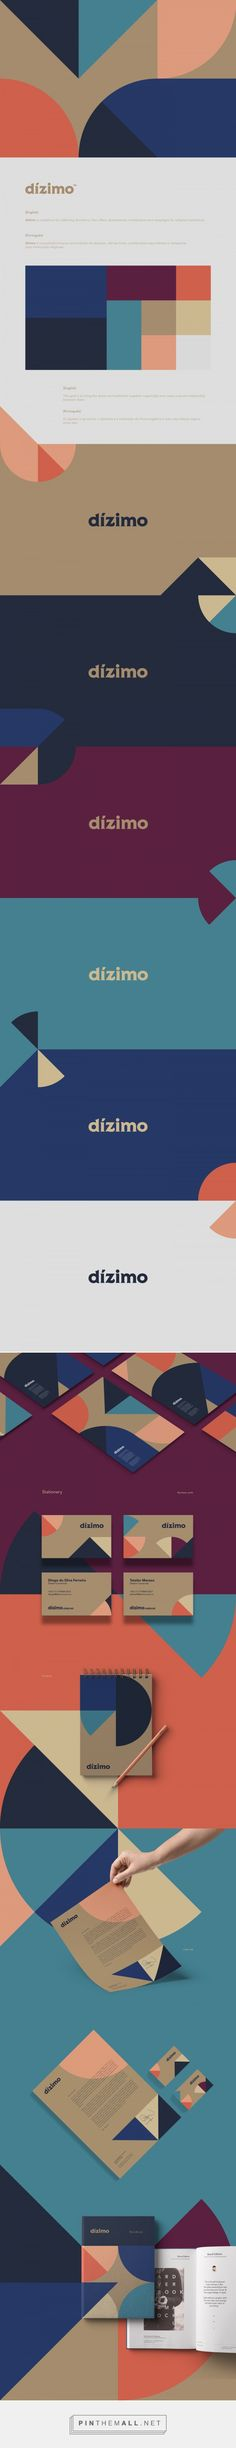 Dízimo on Behance... - a grouped images picture - Pin Them All